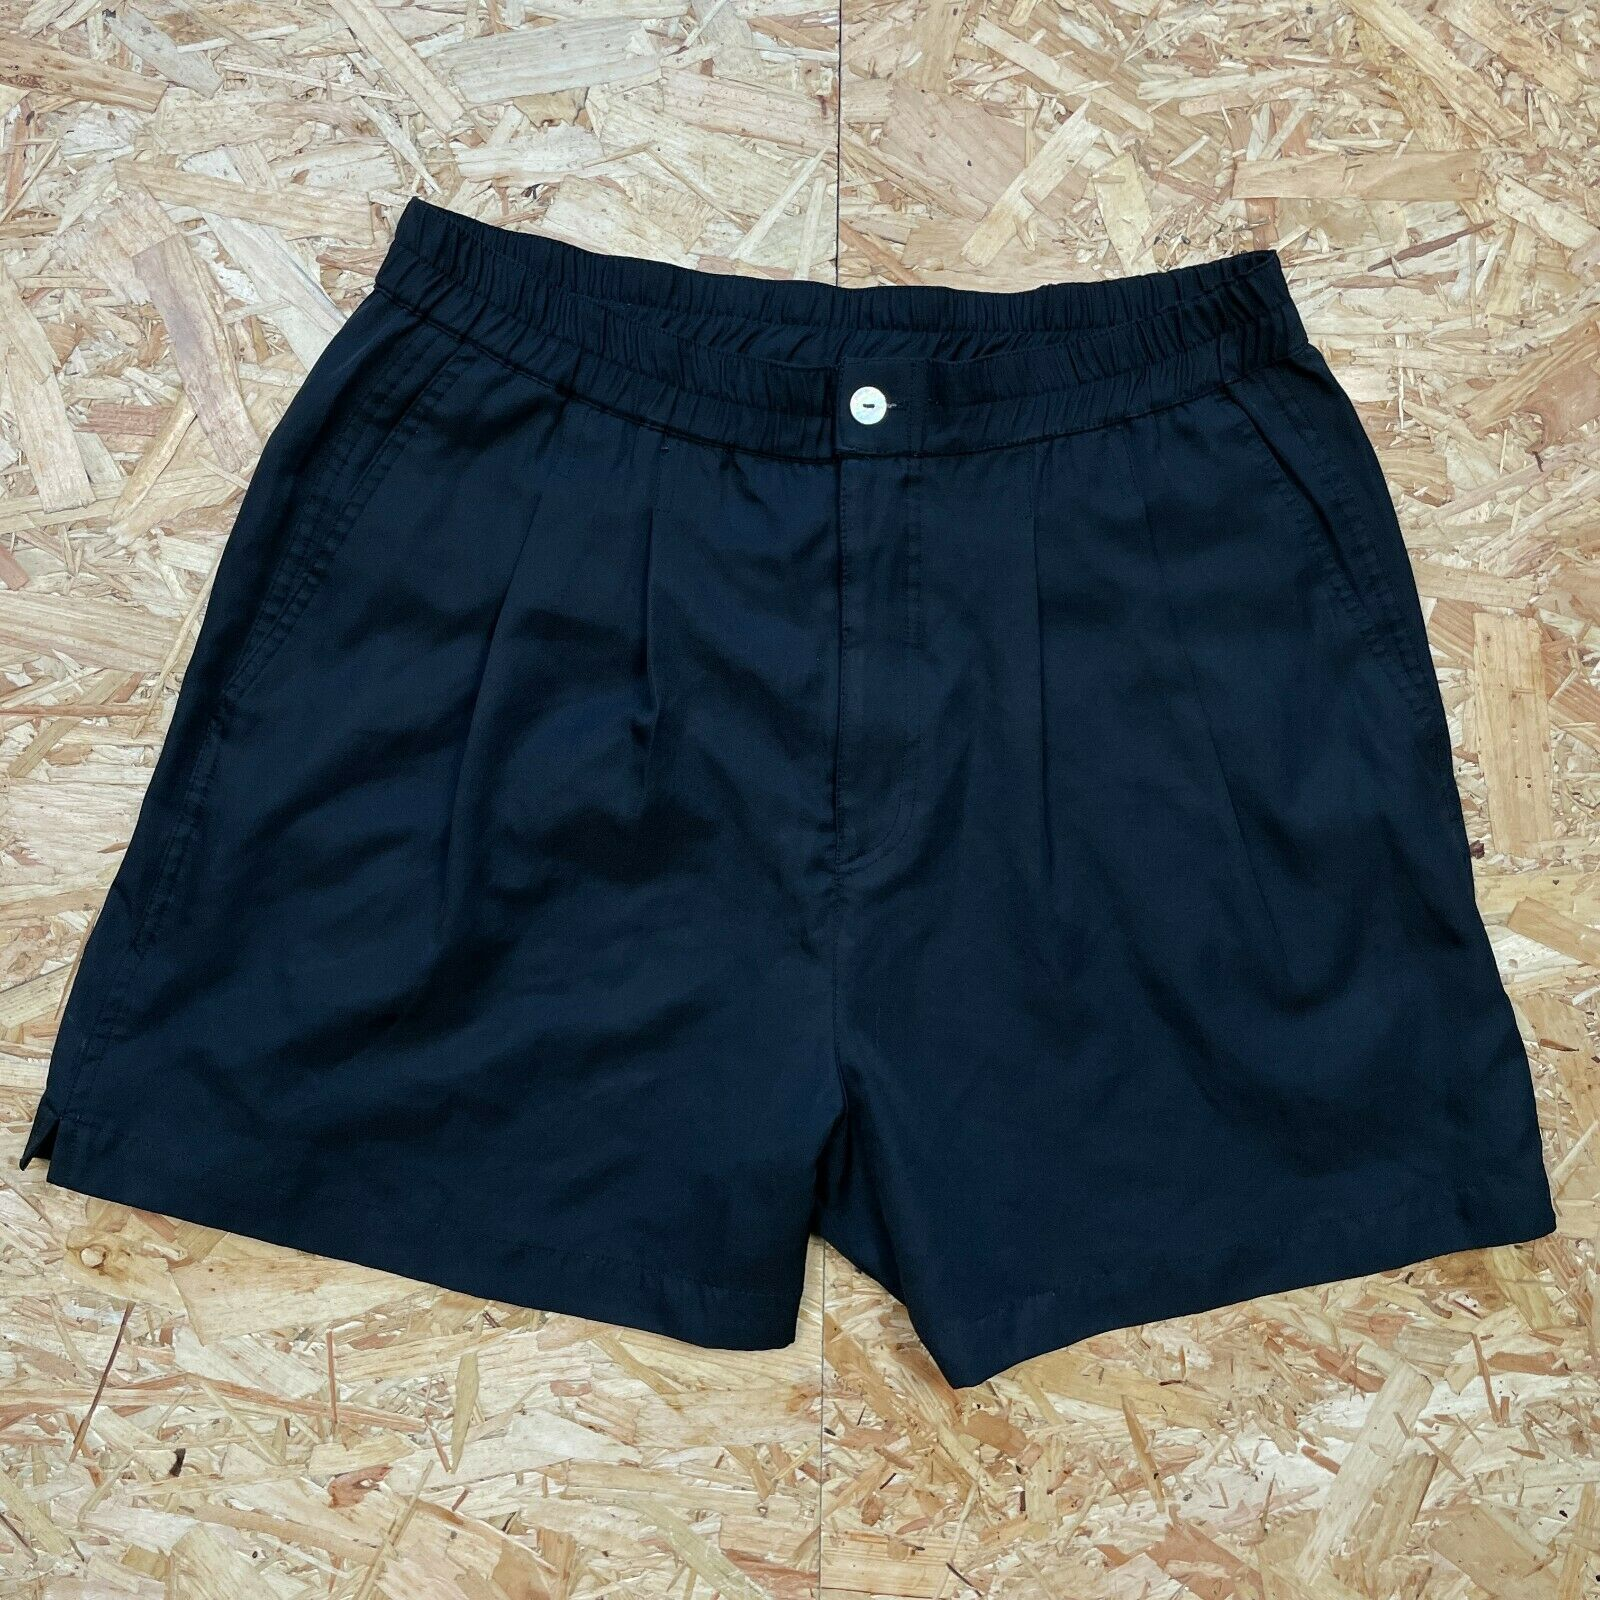 Women's Black Ellesse High Waisted Tennis Shorts Size L Ladies, With Pockets